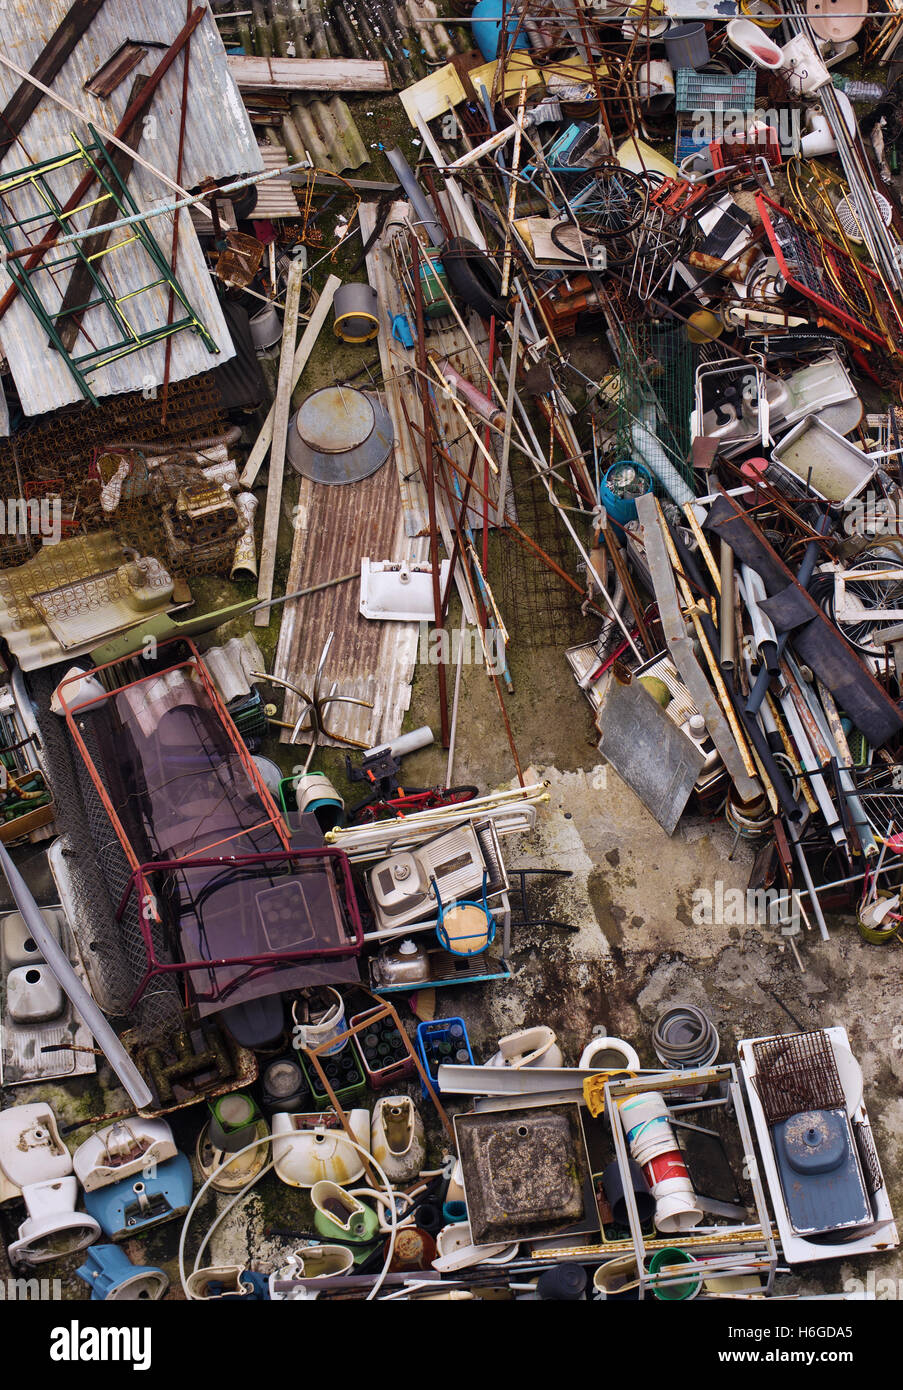 Top view of a junkyard with a chaotic load of wasted trash - Stock Image